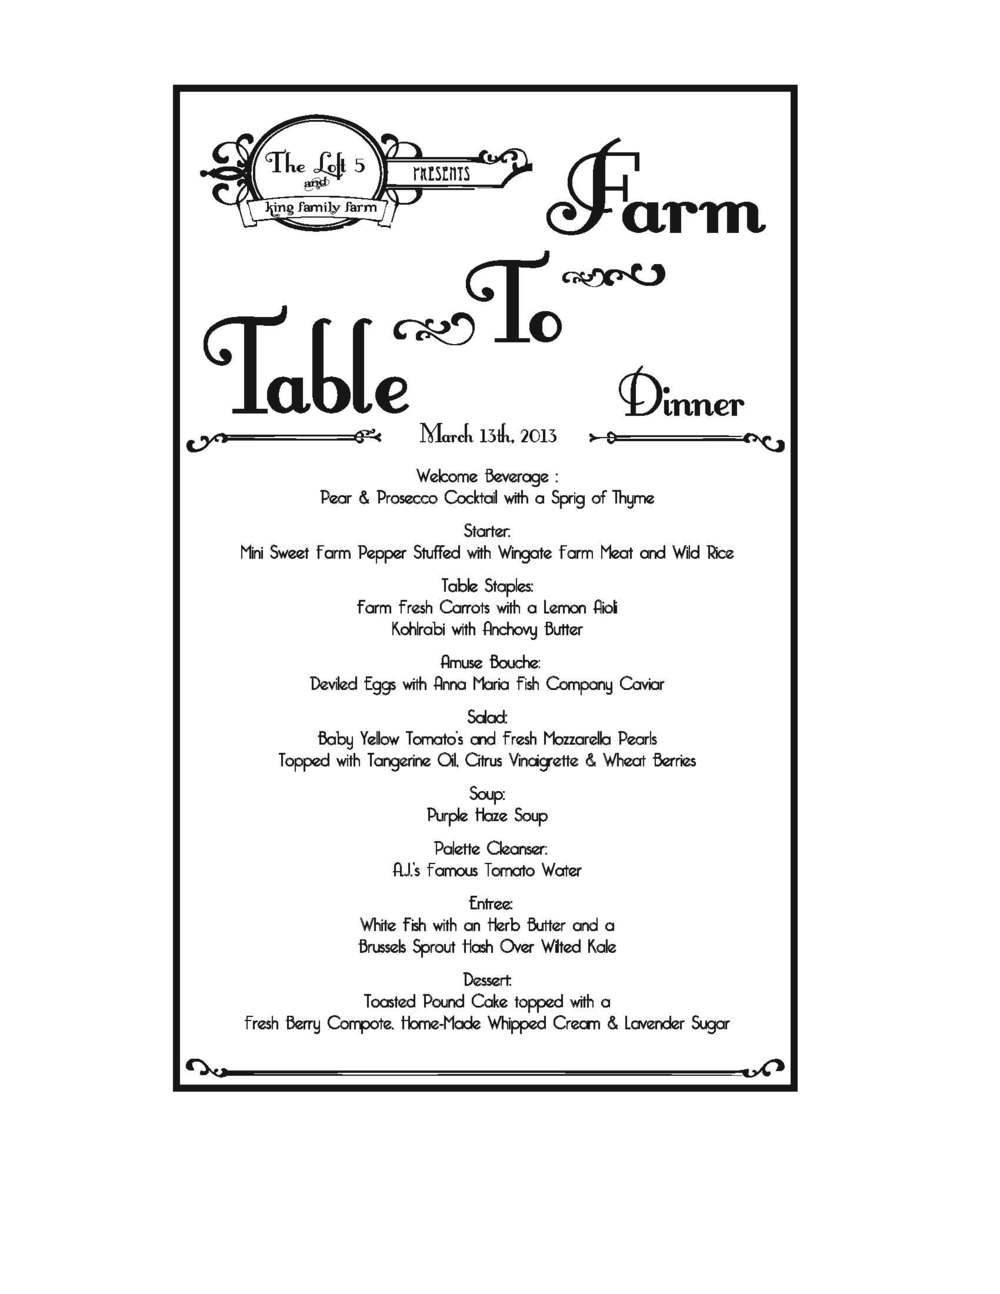 Table To Farm Menu 03-13-13_1.jpg